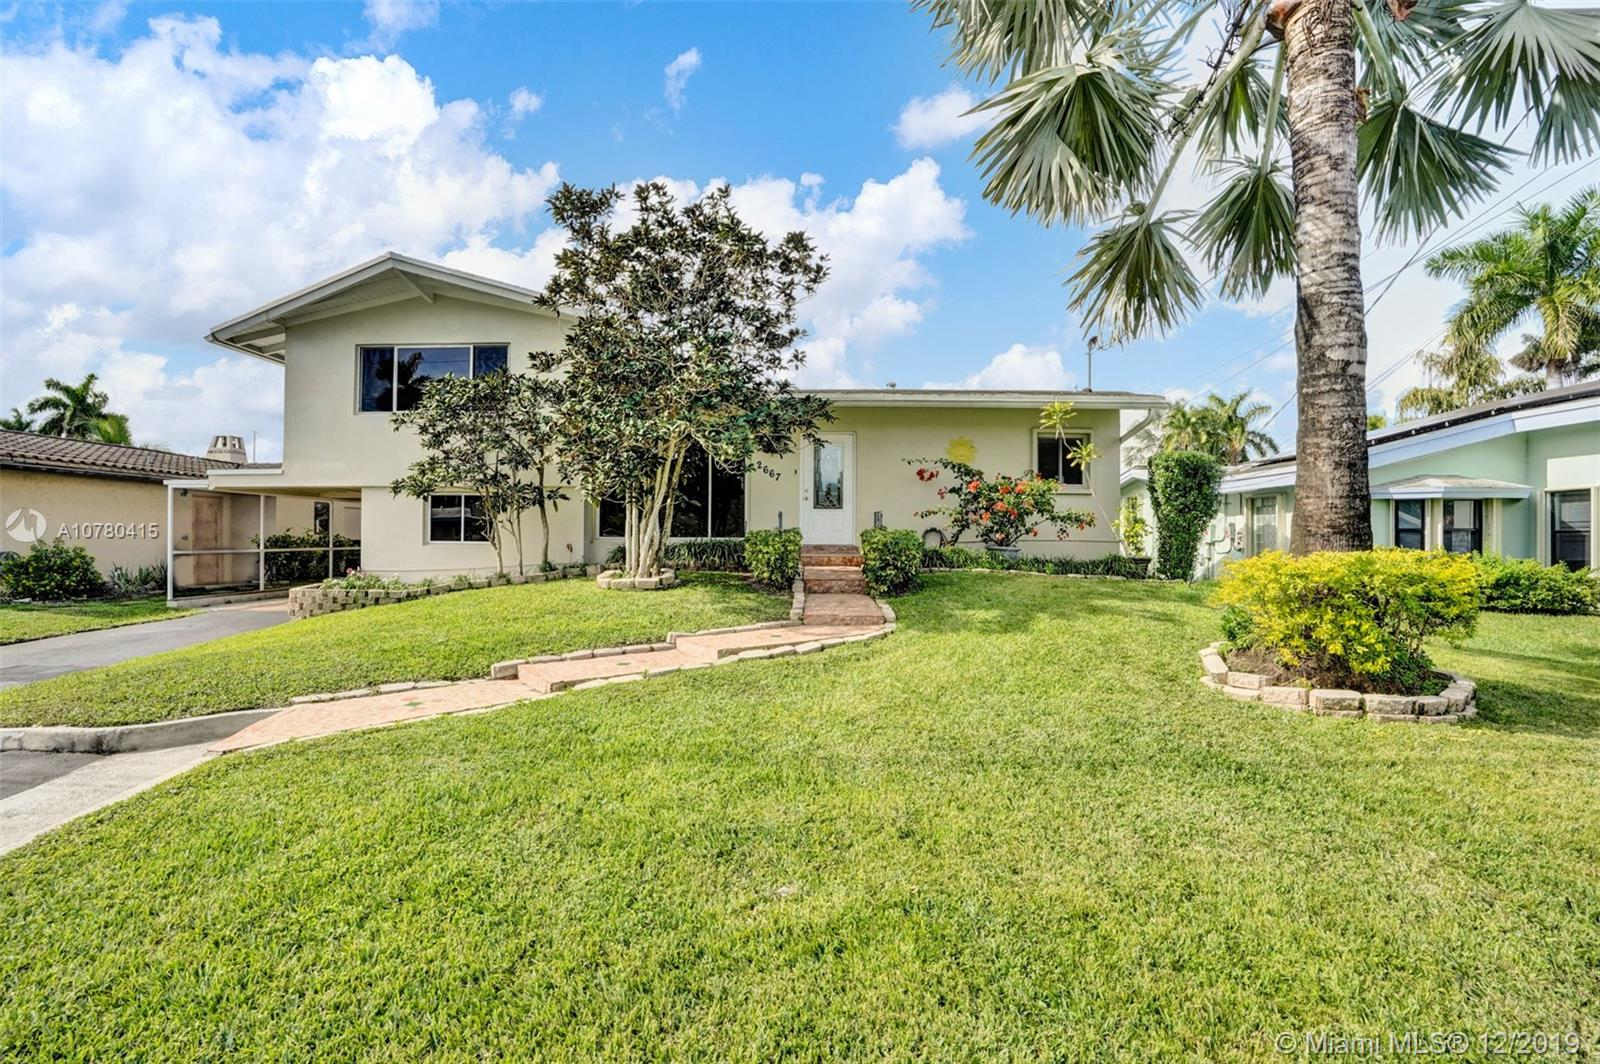 Wonderful highly sought after Tri-level home sits 5 lots off point with 65ft of deep water with ocean access and no fixed bridges. This 3/2 features lots of natural light with vaulted ceilings, recently updated kitchen w/Corian counters and SS appliances. The eat-in kitchen opens out to the back yard to make for easy entertaining. Updates in the last year totaling $60k include a completely new 45ft dock with new dock pedestal providing 50 amp/30 amp power and water, updates to seawall including weep holes, new 400 amp electrical panel, all cast iron waste/sewer lines and water supply line replaced, and new HVAC unit. These upgrades are HUGE in the long run.  Lauderdale Isles is centrally located with easy access to all major highways and minutes to downtown, tri-rail, airport, and beaches.